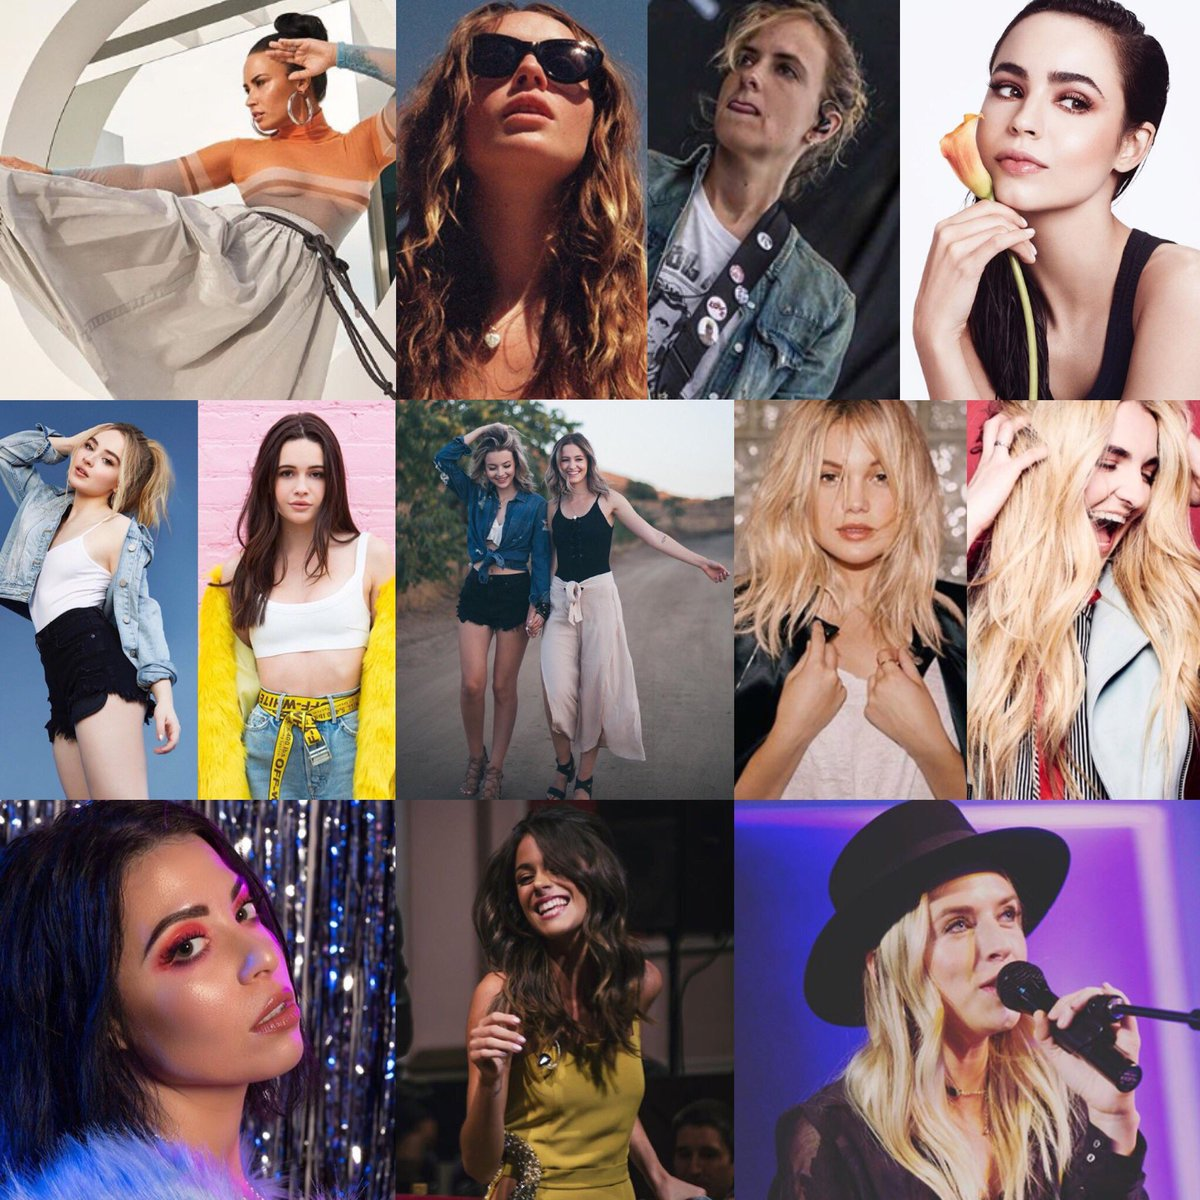 """Hollywood Records on Twitter: """"Happy #InternationalWomensDay to these  bright and beautiful ladies! Thank you for sharing your talent and strength  with the ..."""